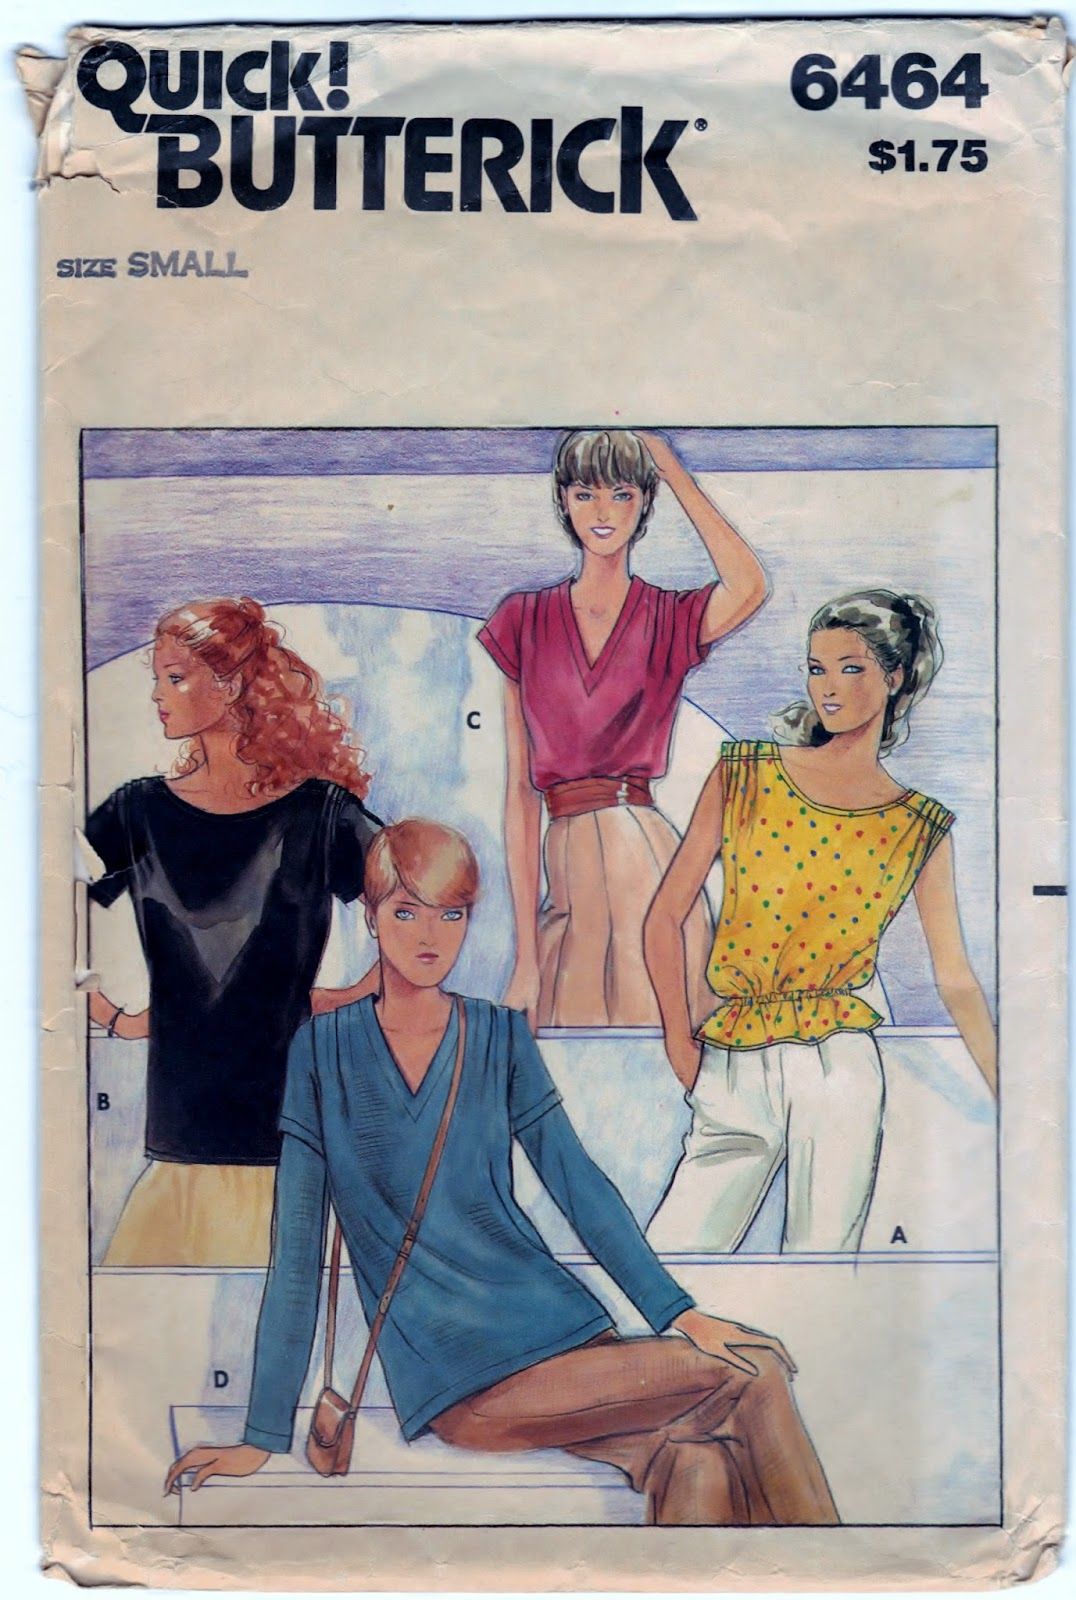 https://www.etsy.com/listing/219202584/butterick-6464-sewing-craft-pattern